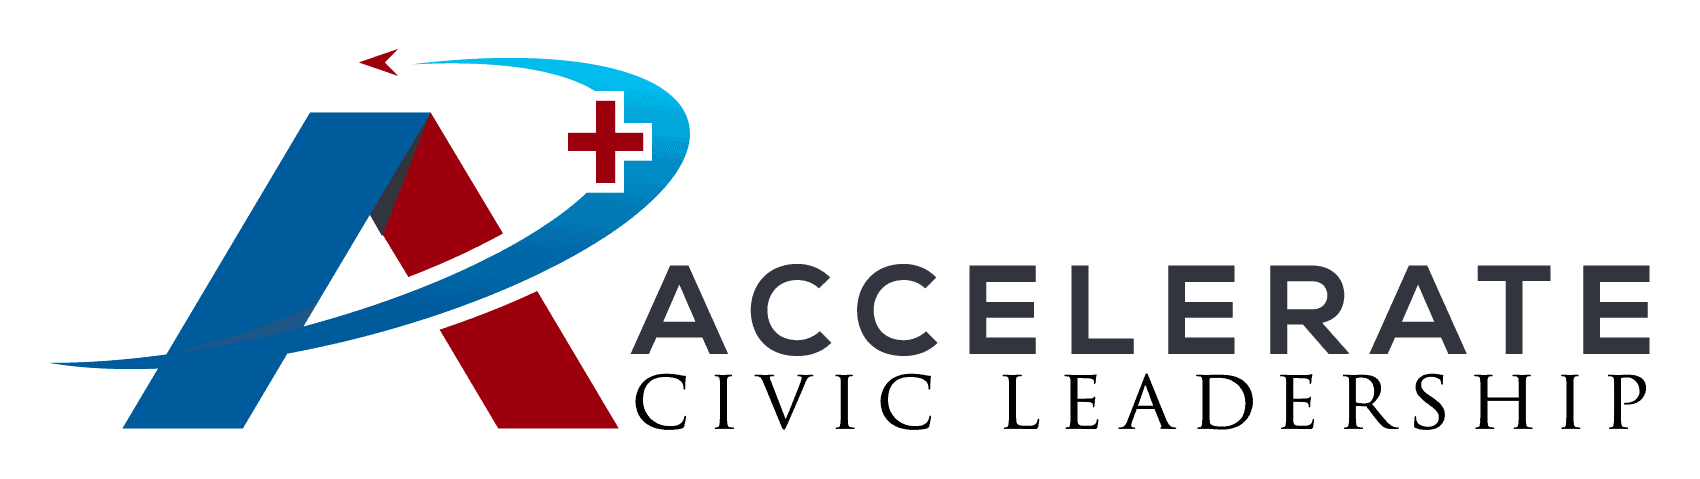 Accelerate Civic Leadership Digital Logo